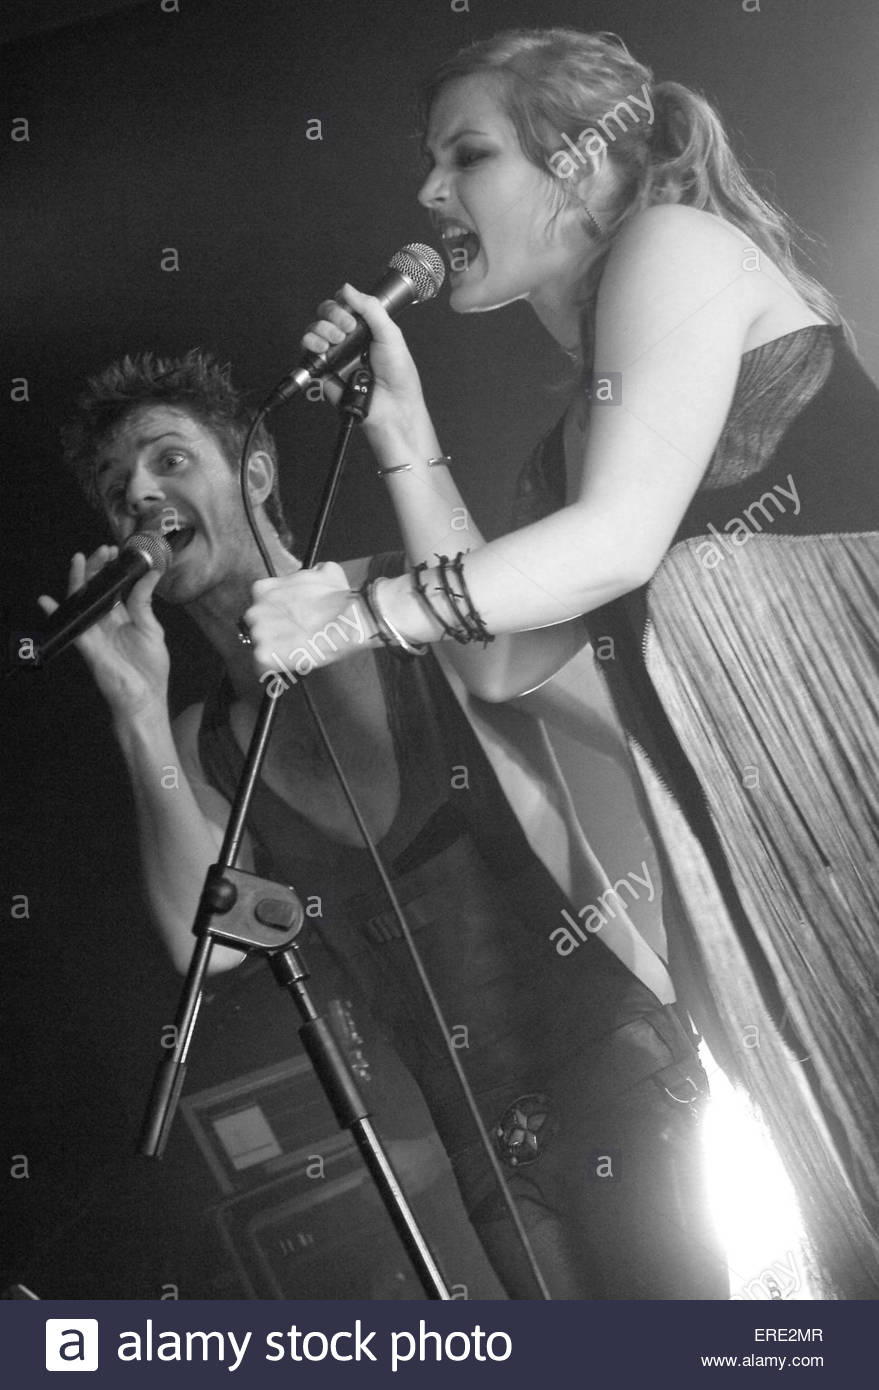 Jake Shears and Ana Matronic of Scissor Sisters performing in Bristol, March 2004. Stock Photo